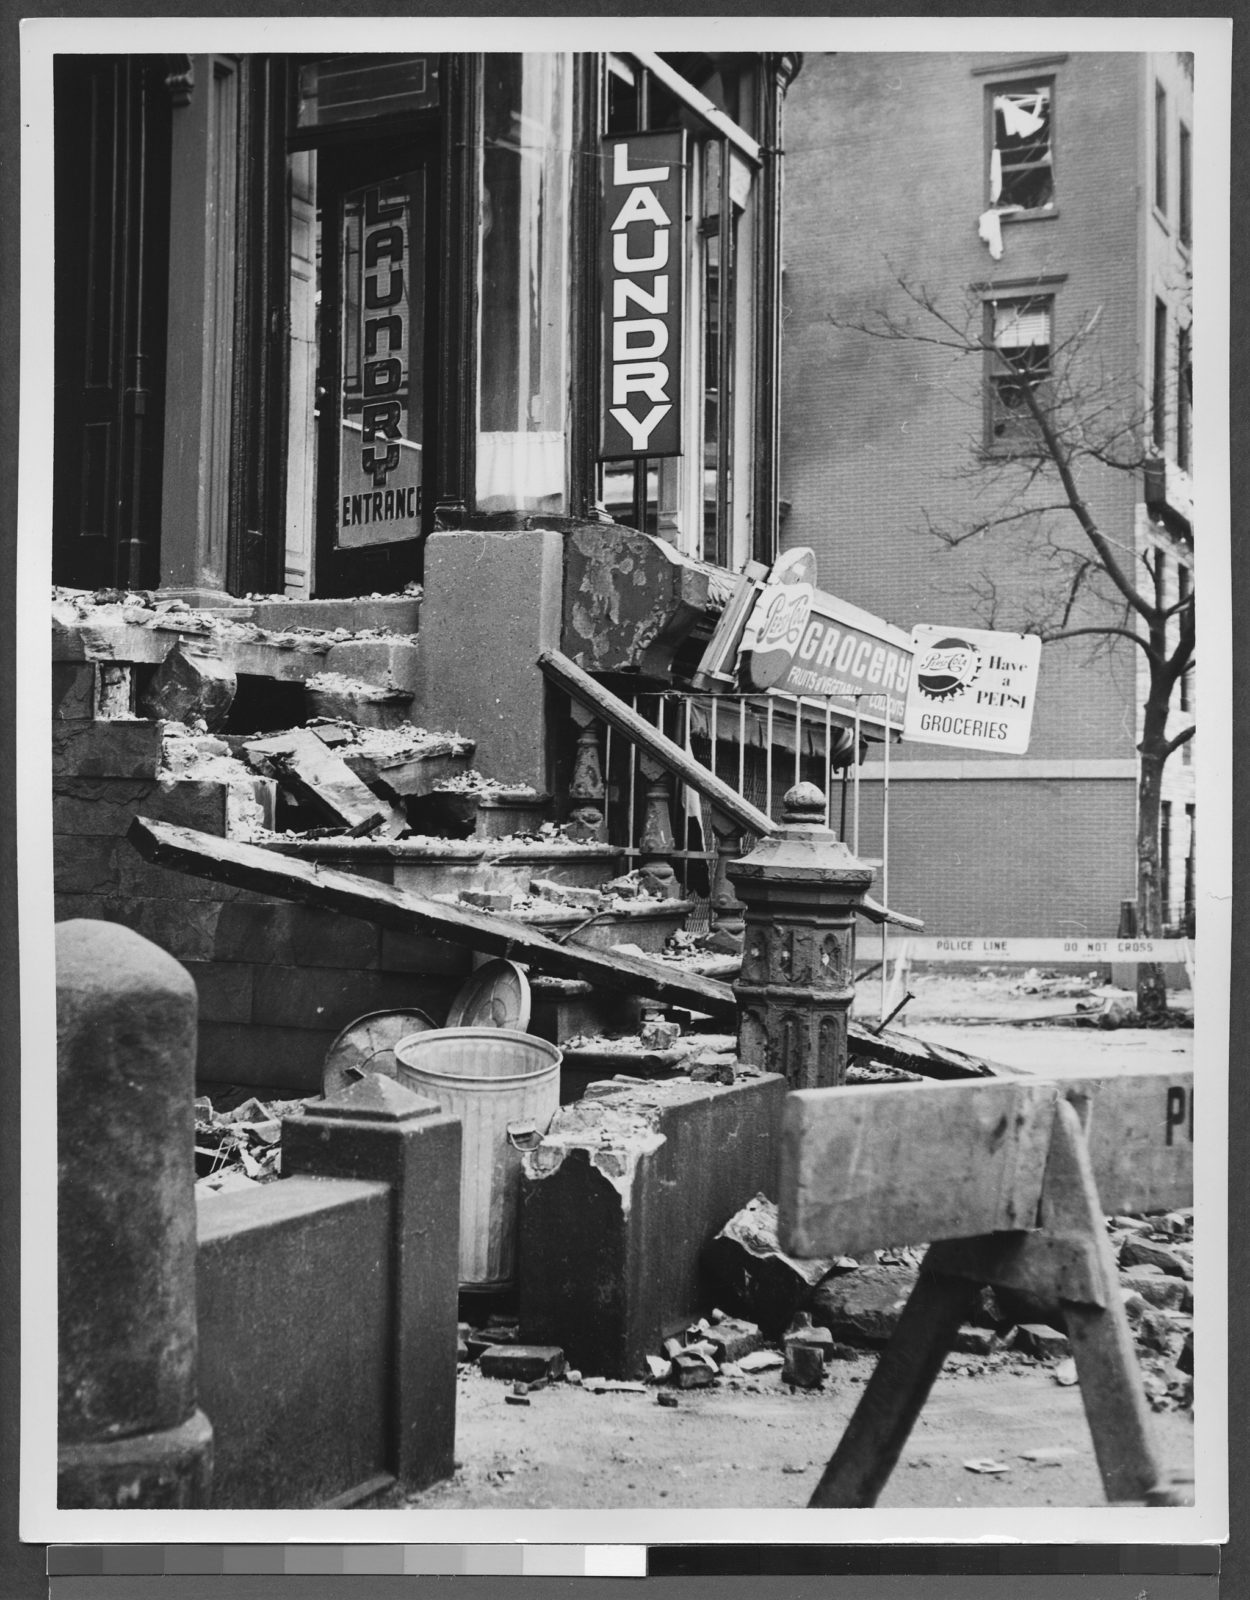 Close-up of corner of Seventh Avenue and Sterling Place after crash of United Airlines airplane with damaged building in foreground with signs.